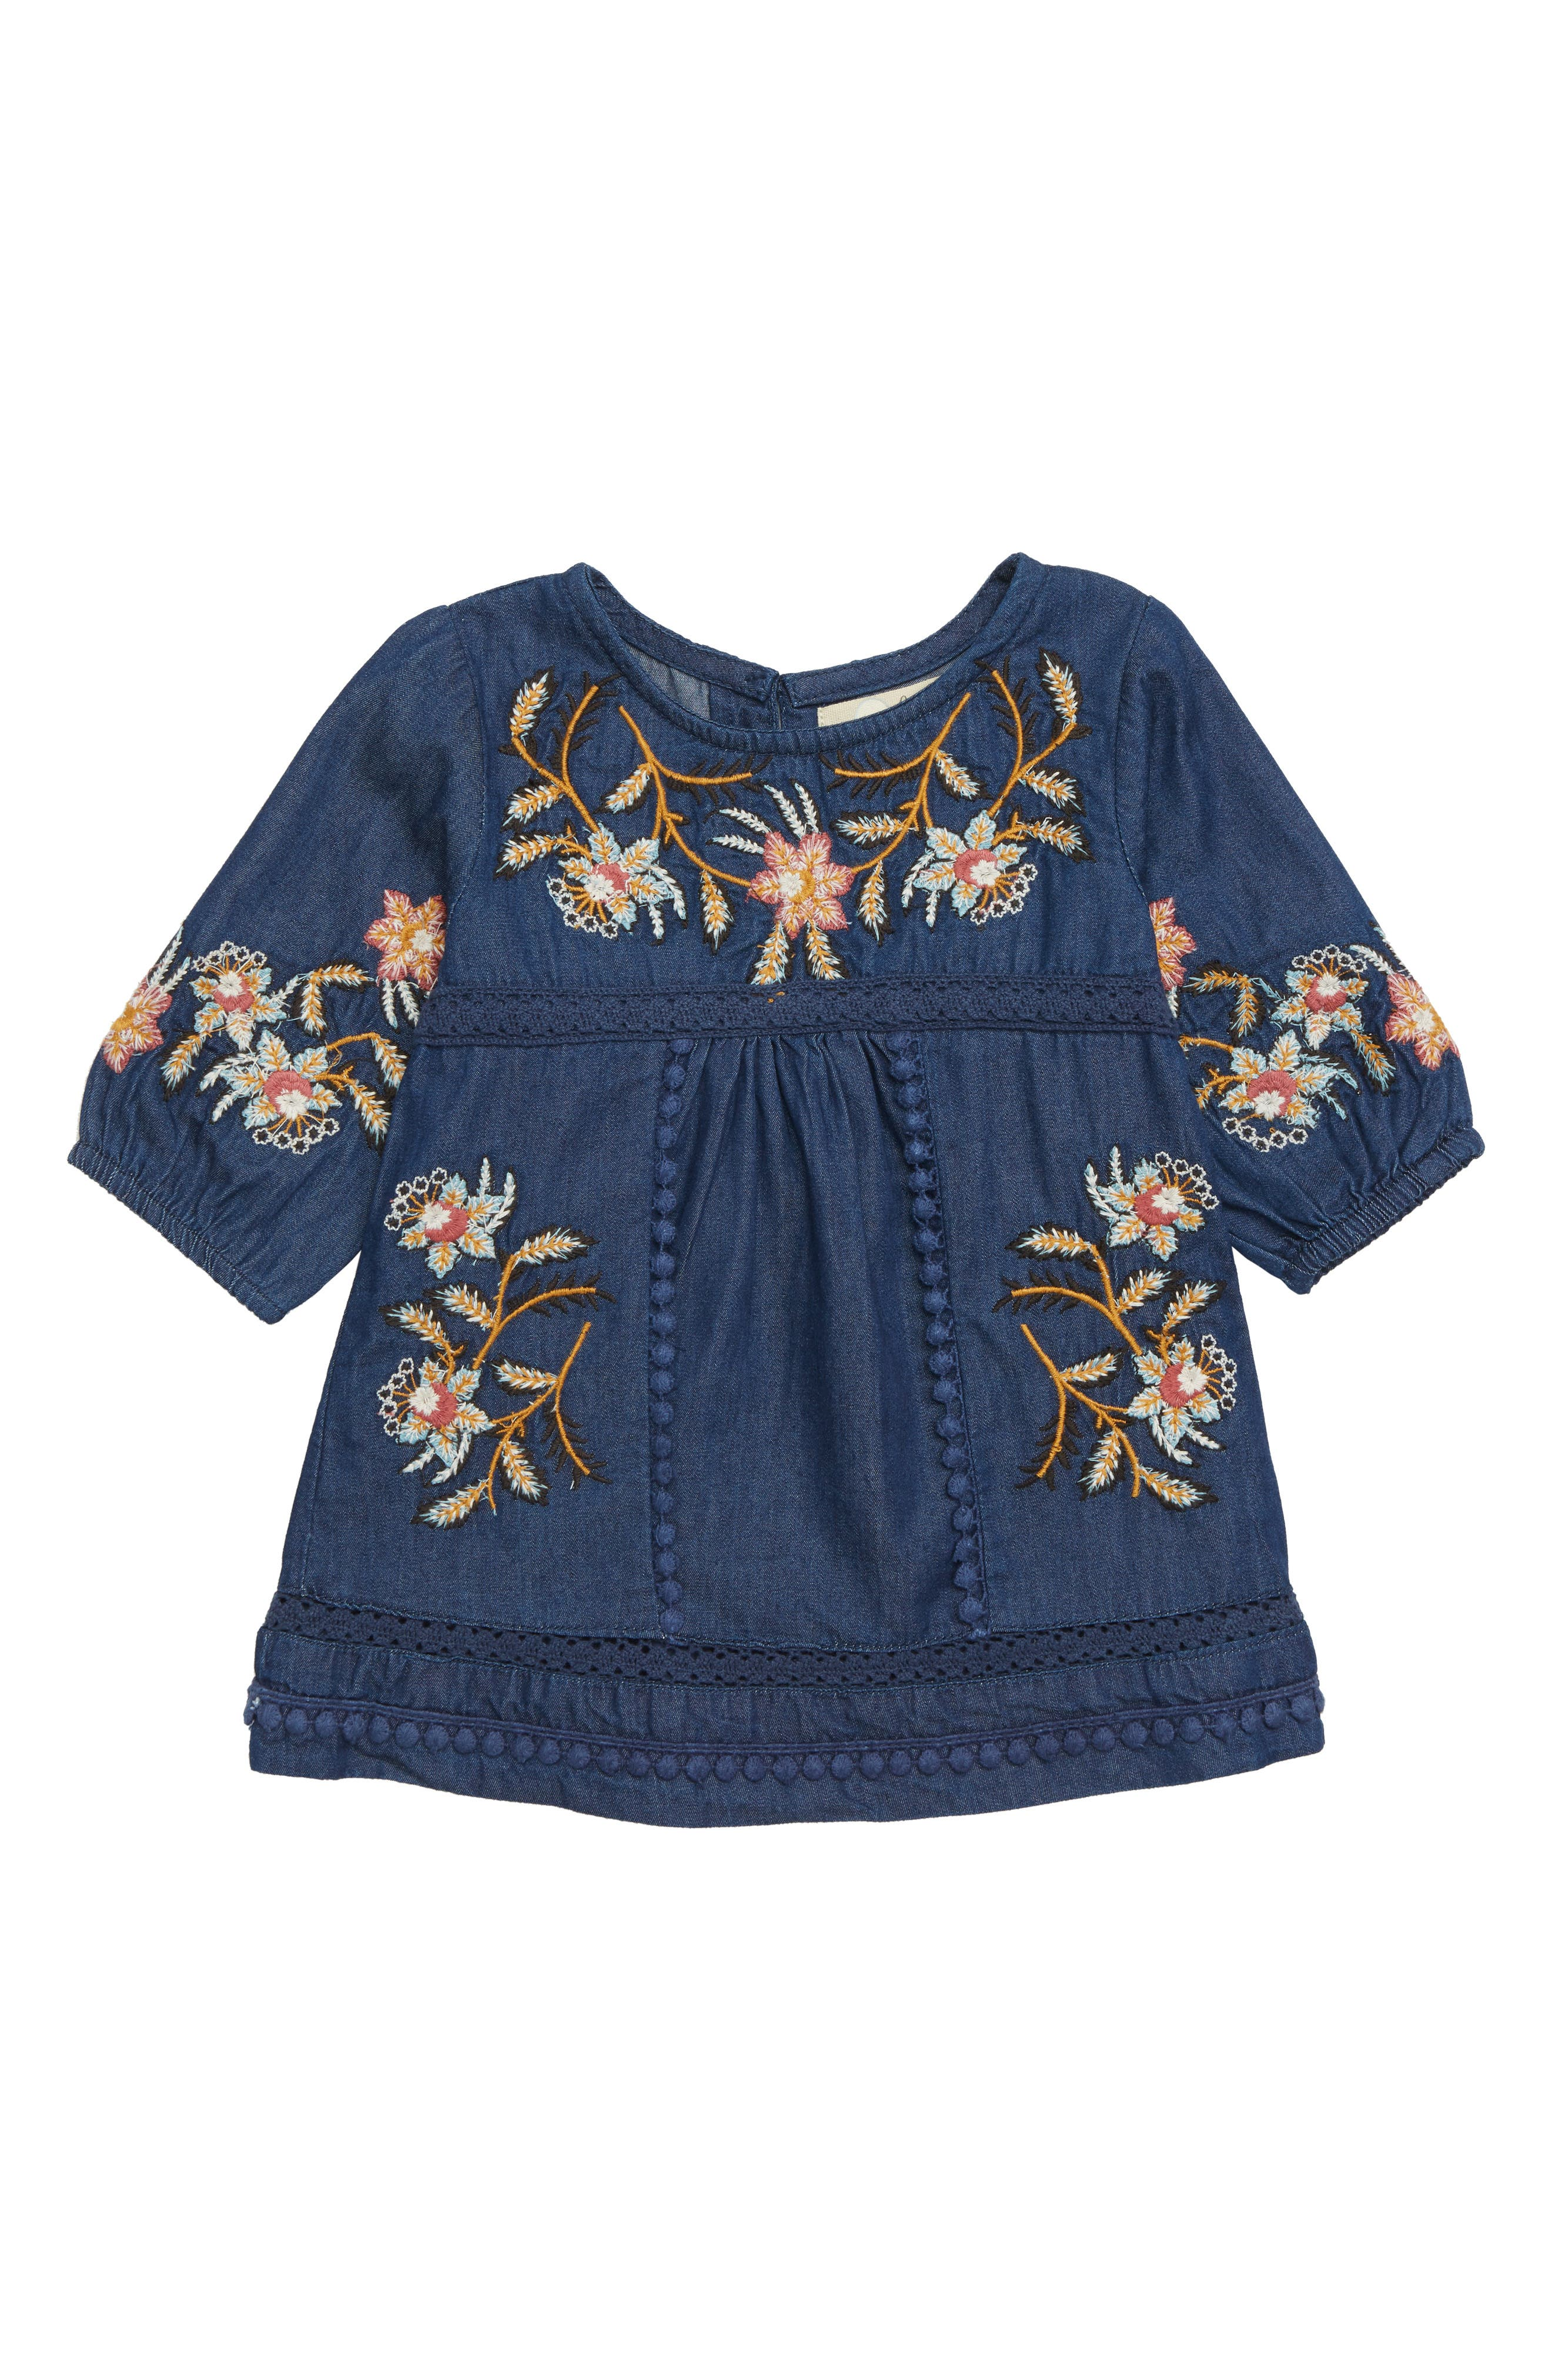 Peek Willow Embroidered Denim Dress,                         Main,                         color, NAVY